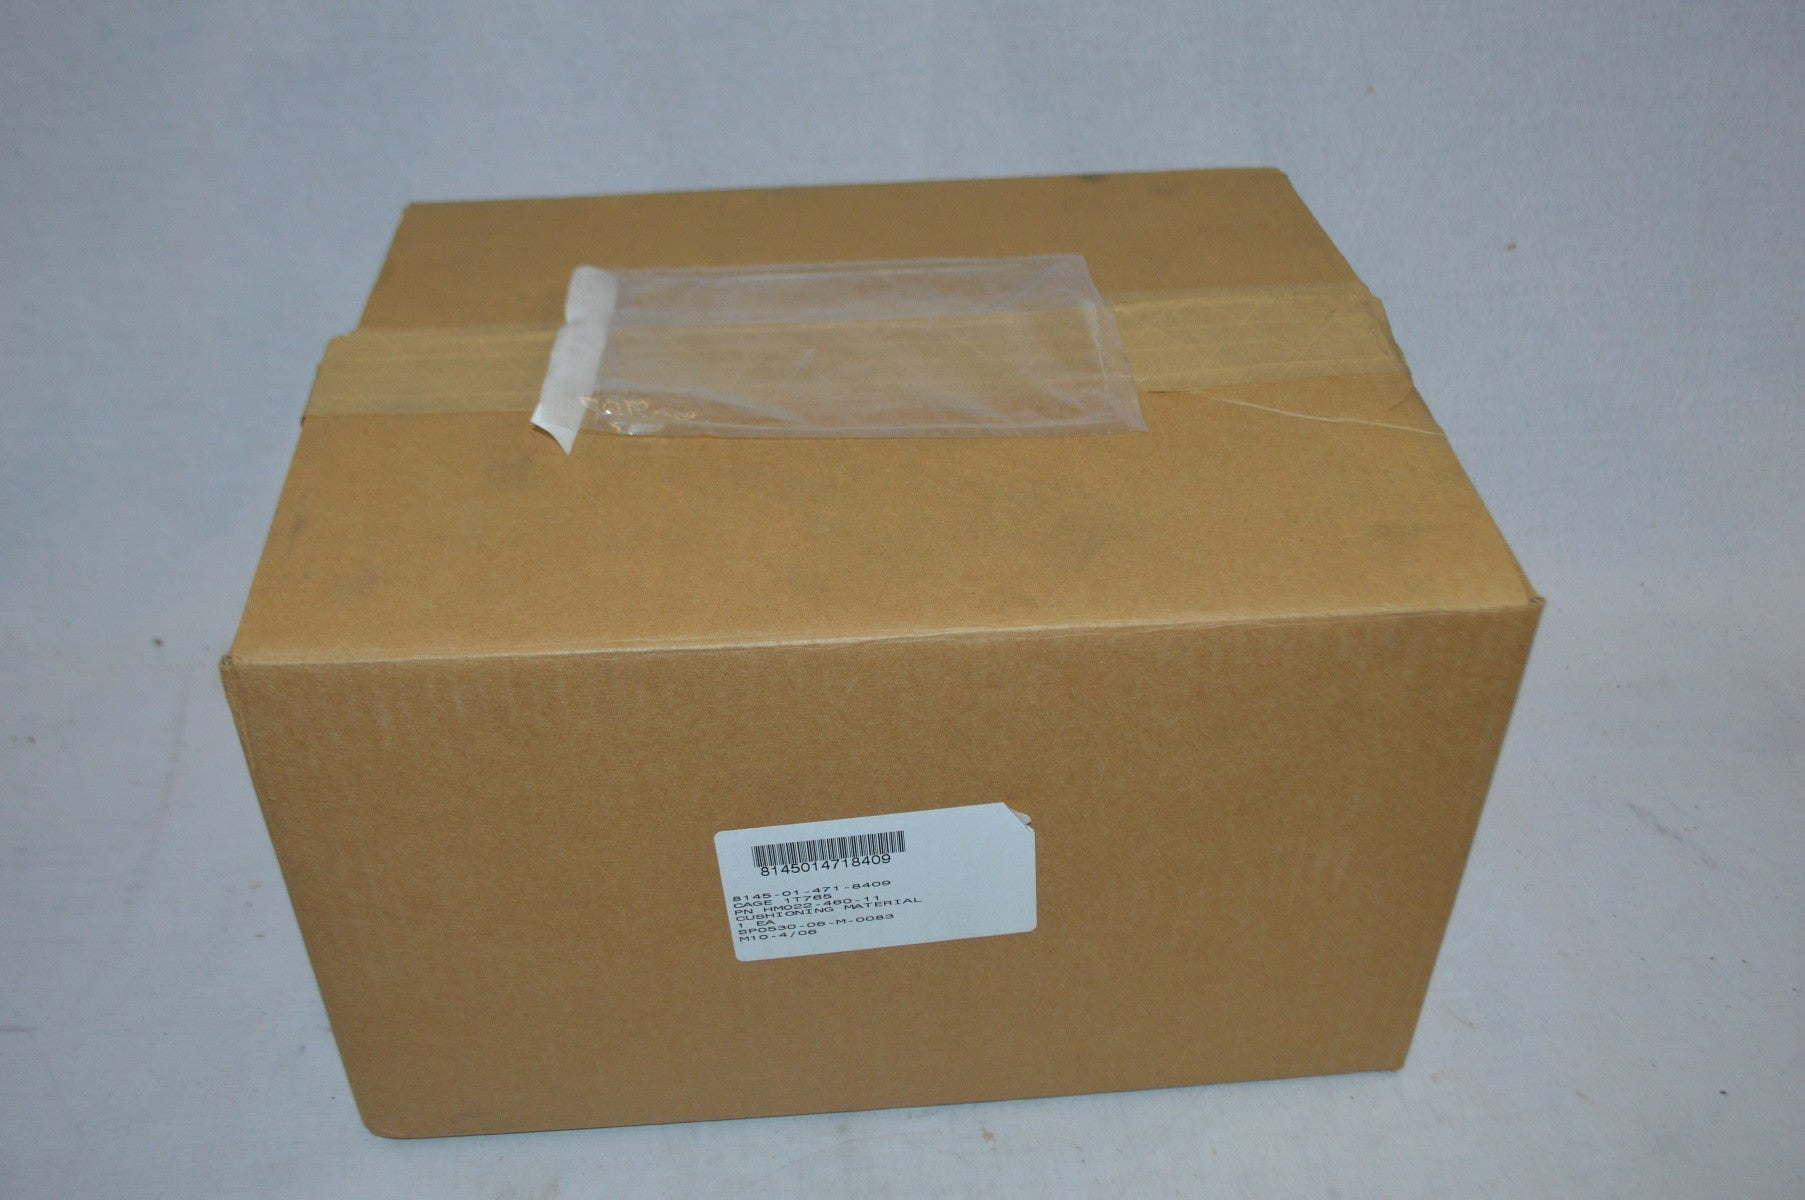 Package cushioning NSN:8145-01-471-8409 P/N:022-460-11